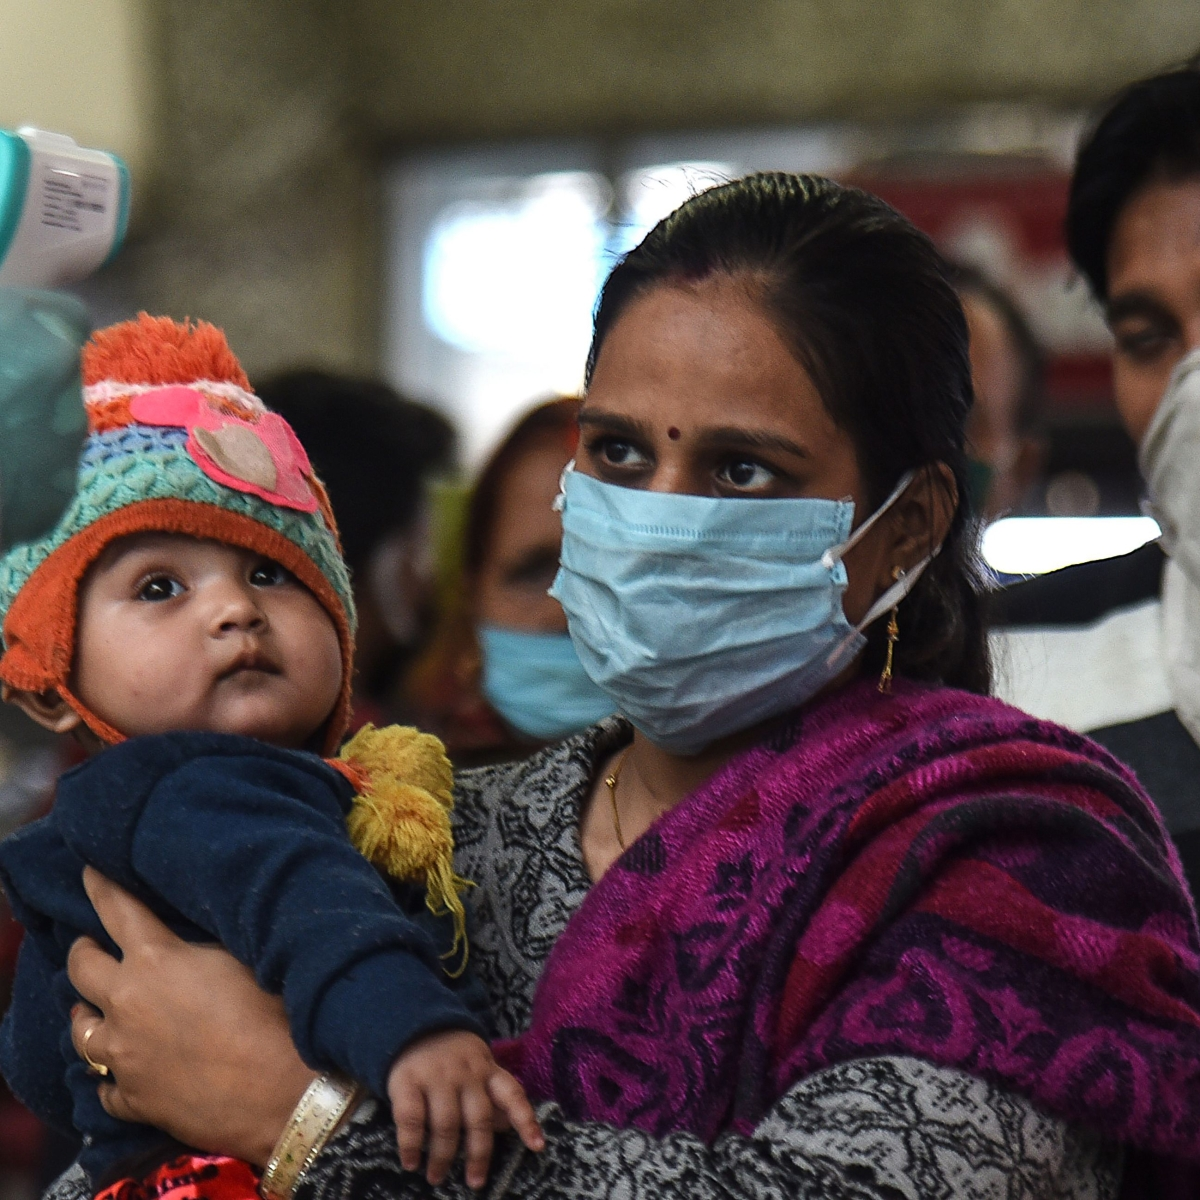 COVID-19 latest updates: India records 11,067 new cases, tally rises to 1,08,58,371